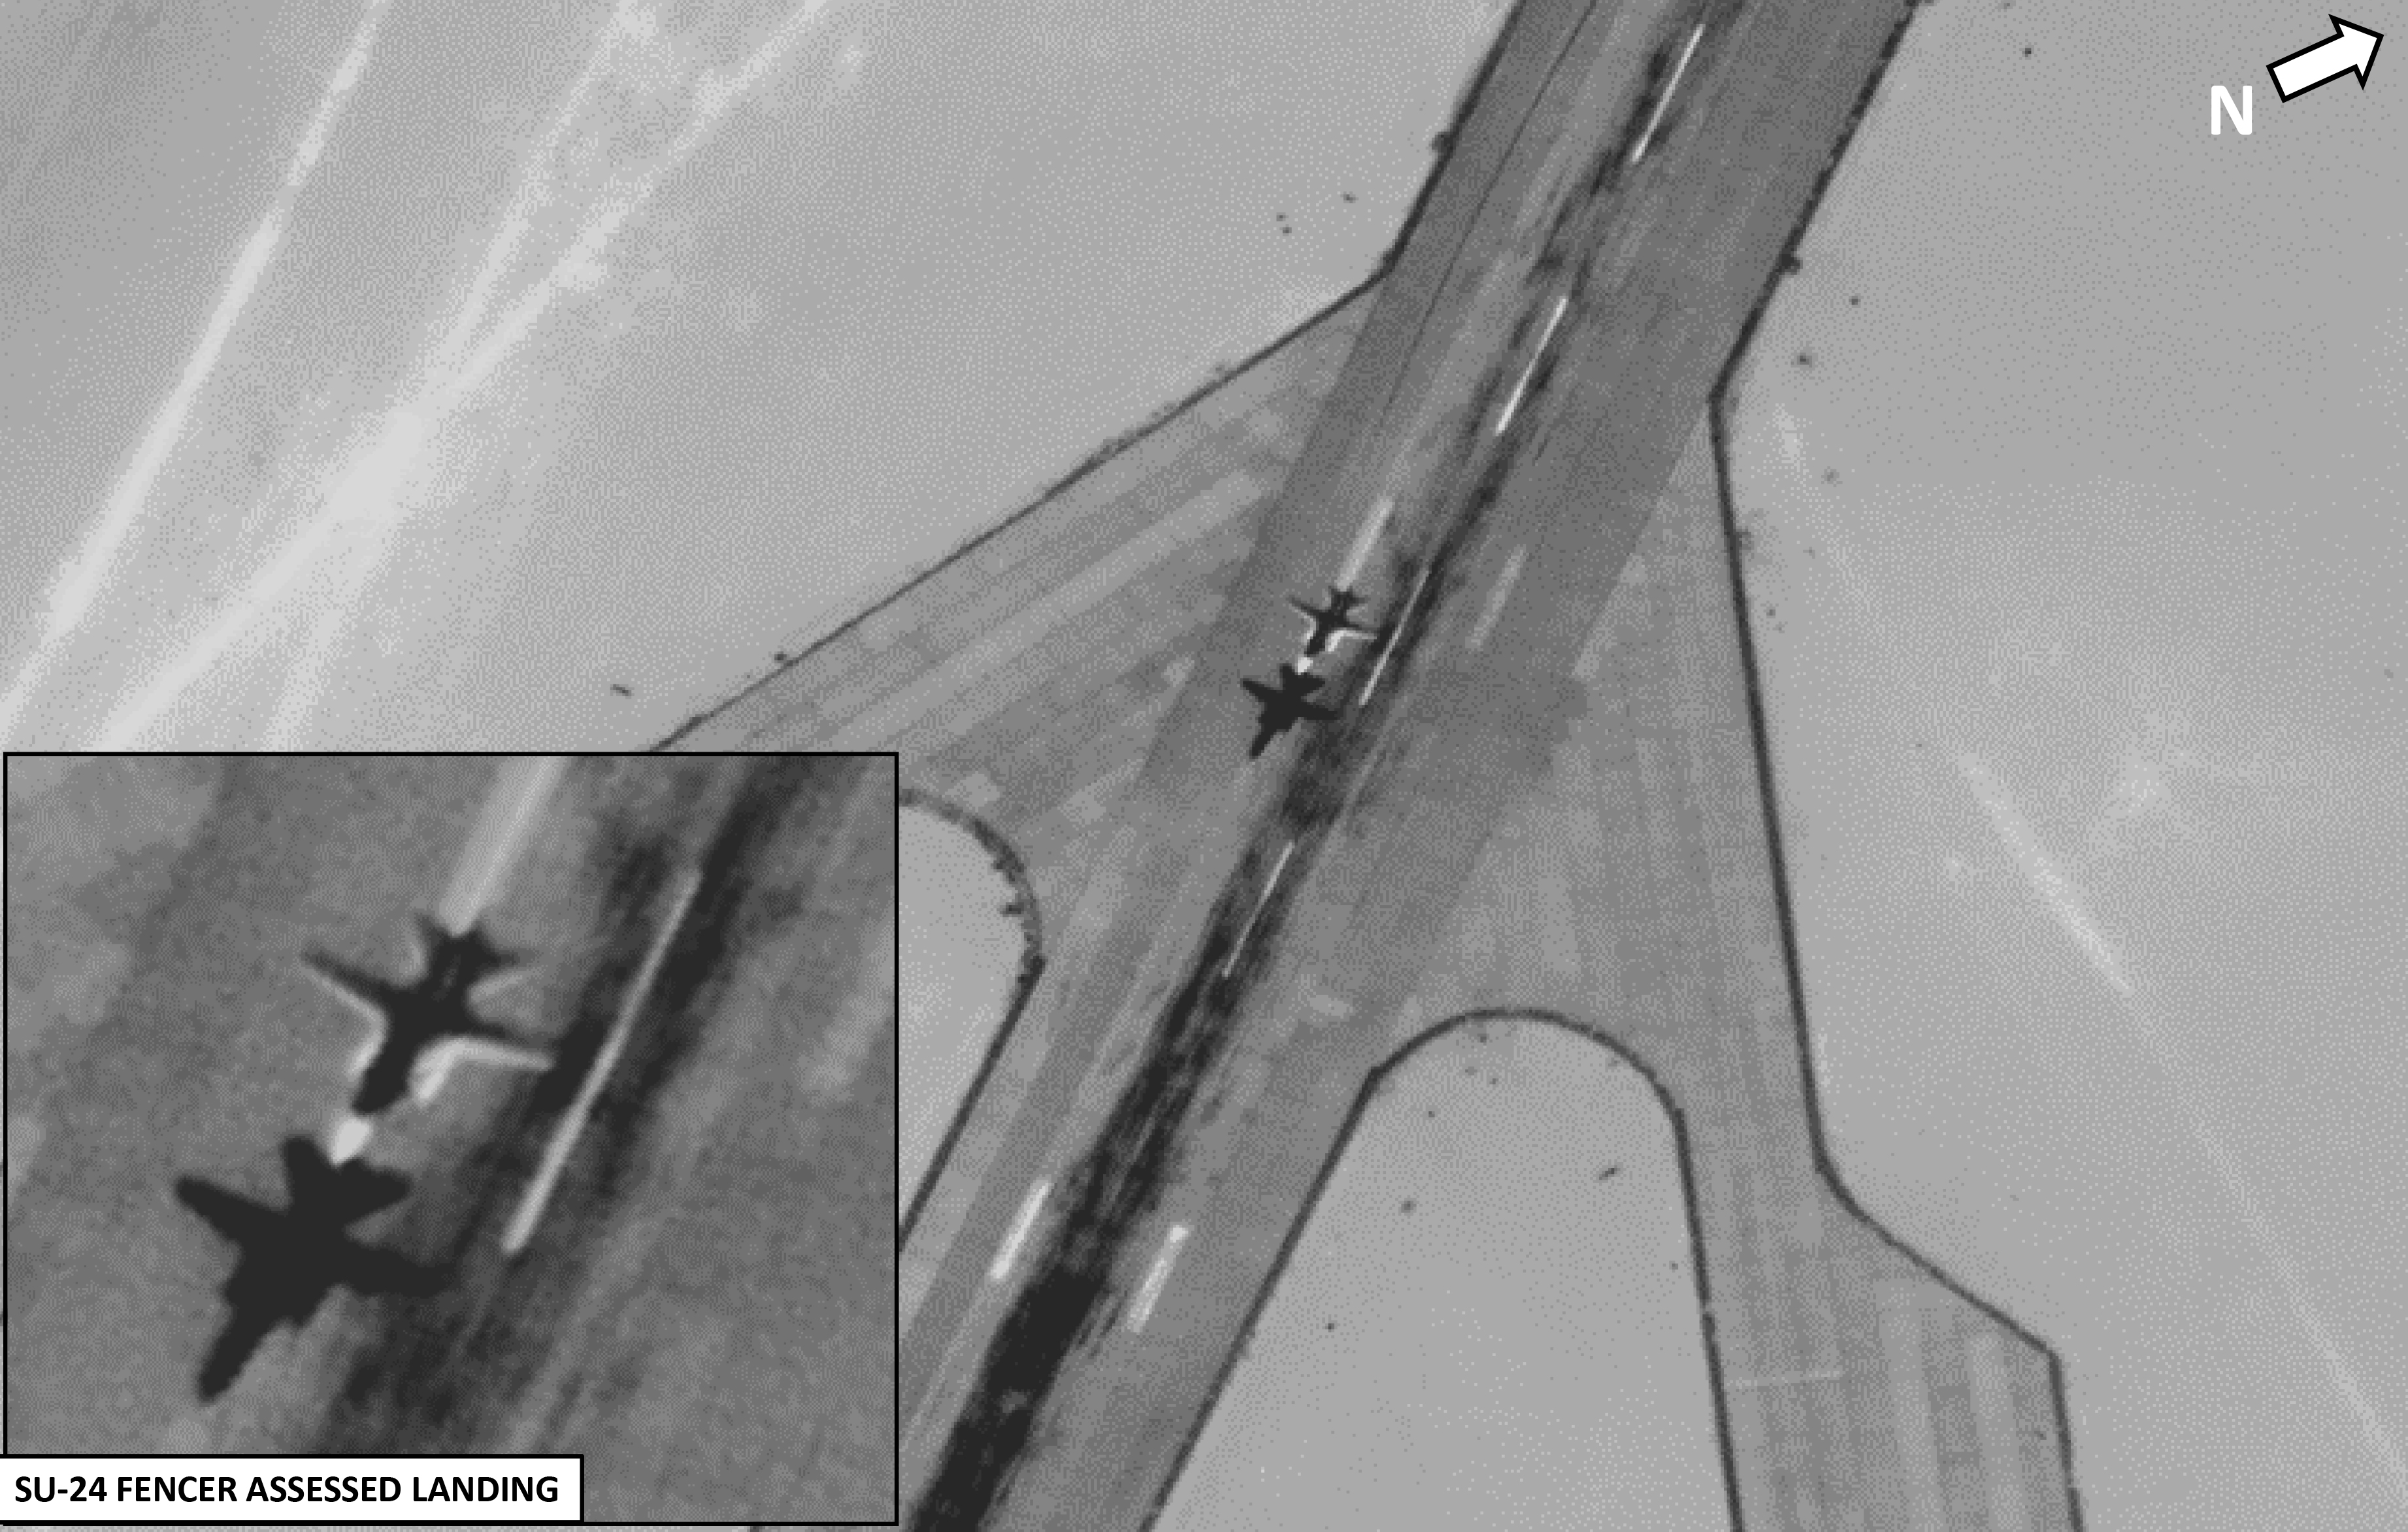 new-evidence-of-russian-aircraft-active-in-li-1.jpg